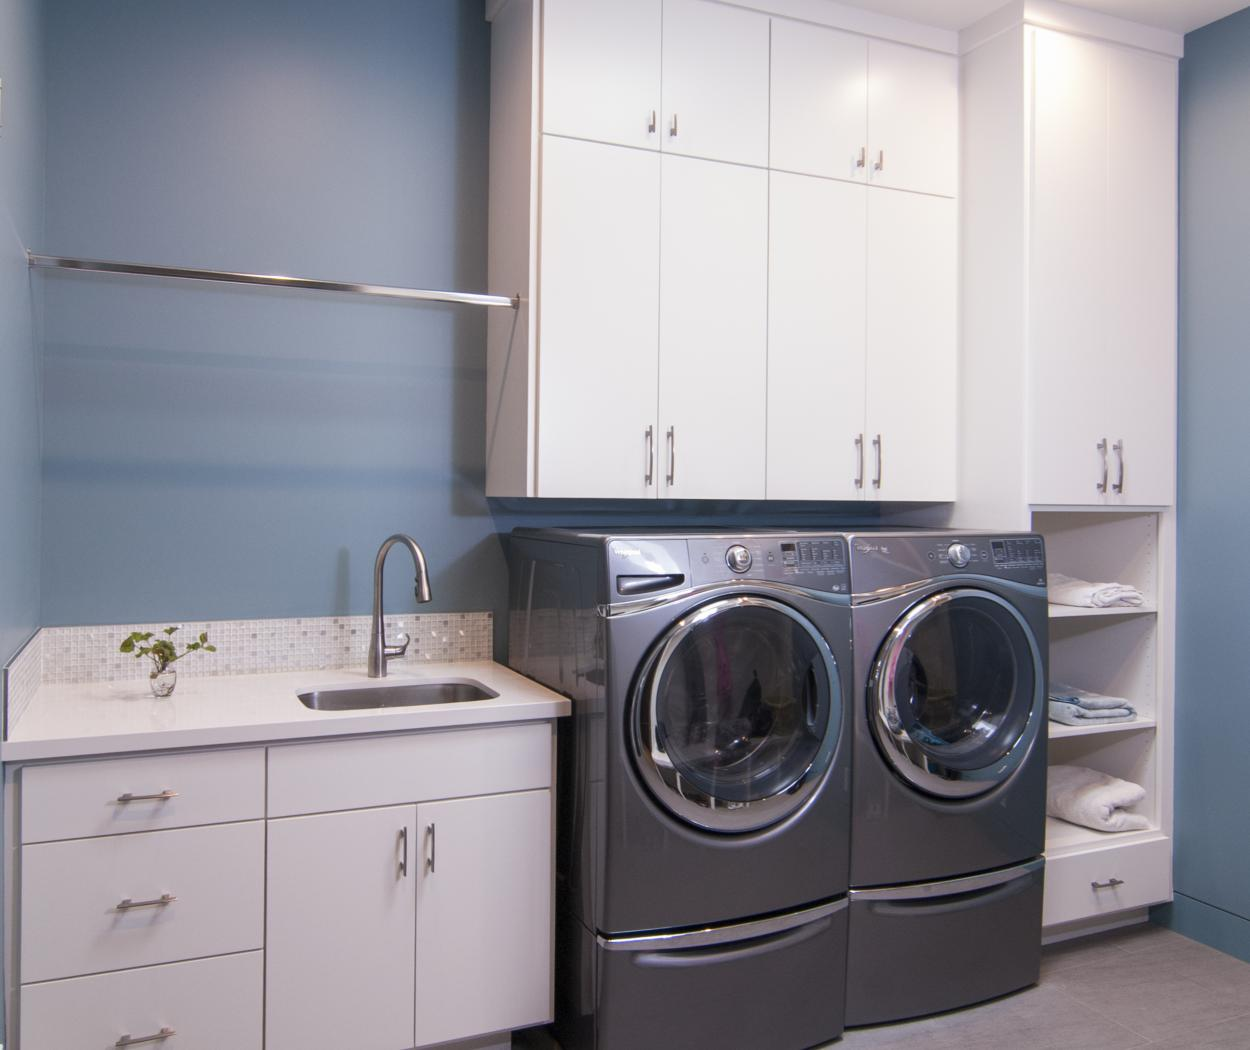 Contemporary White Laundry Room Cabinets with Open Cubbies and a Whirlpool Washer - Dryer